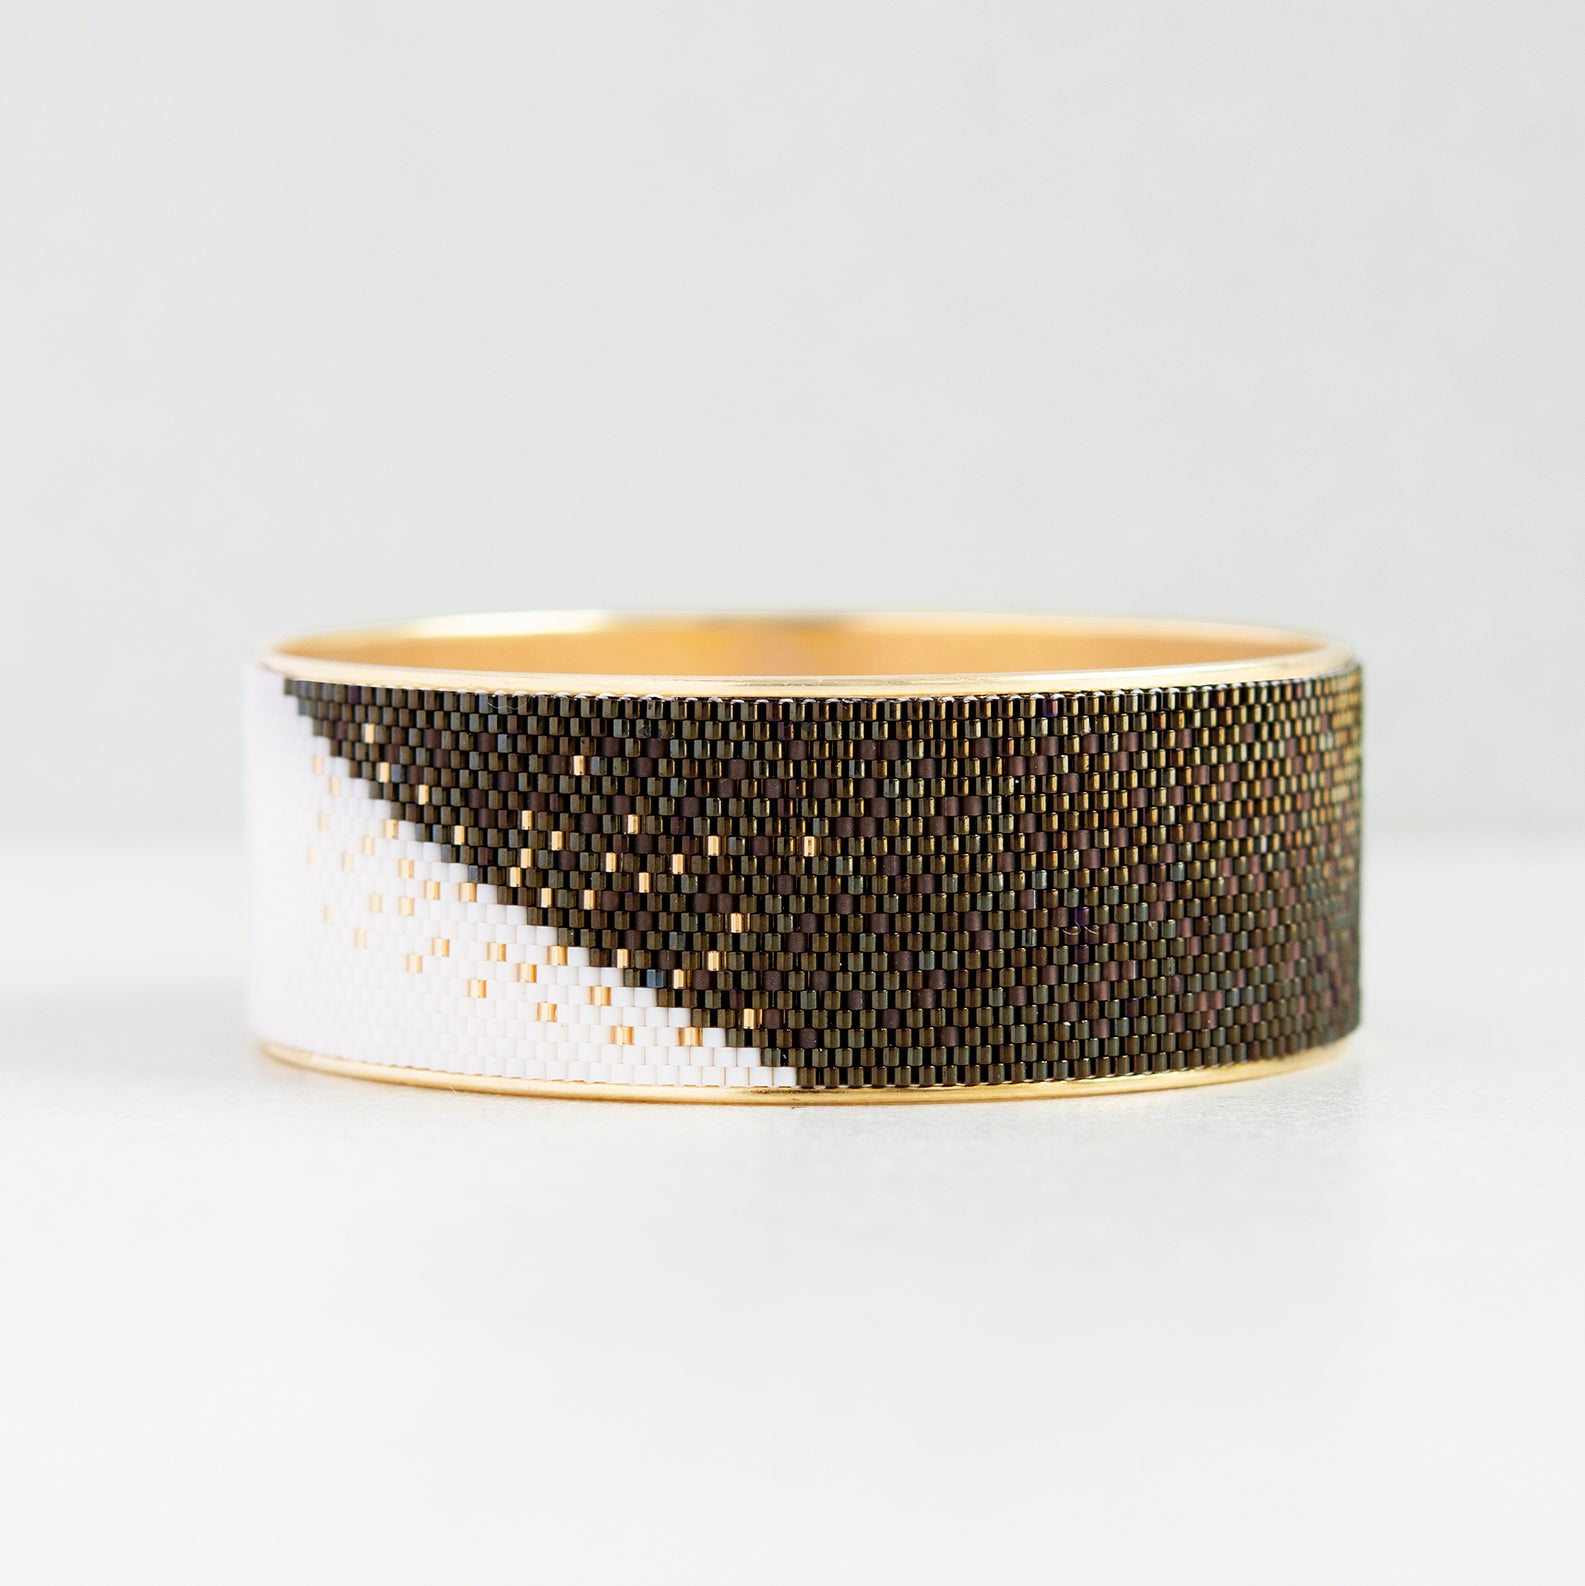 Handmade everyday wide bangles